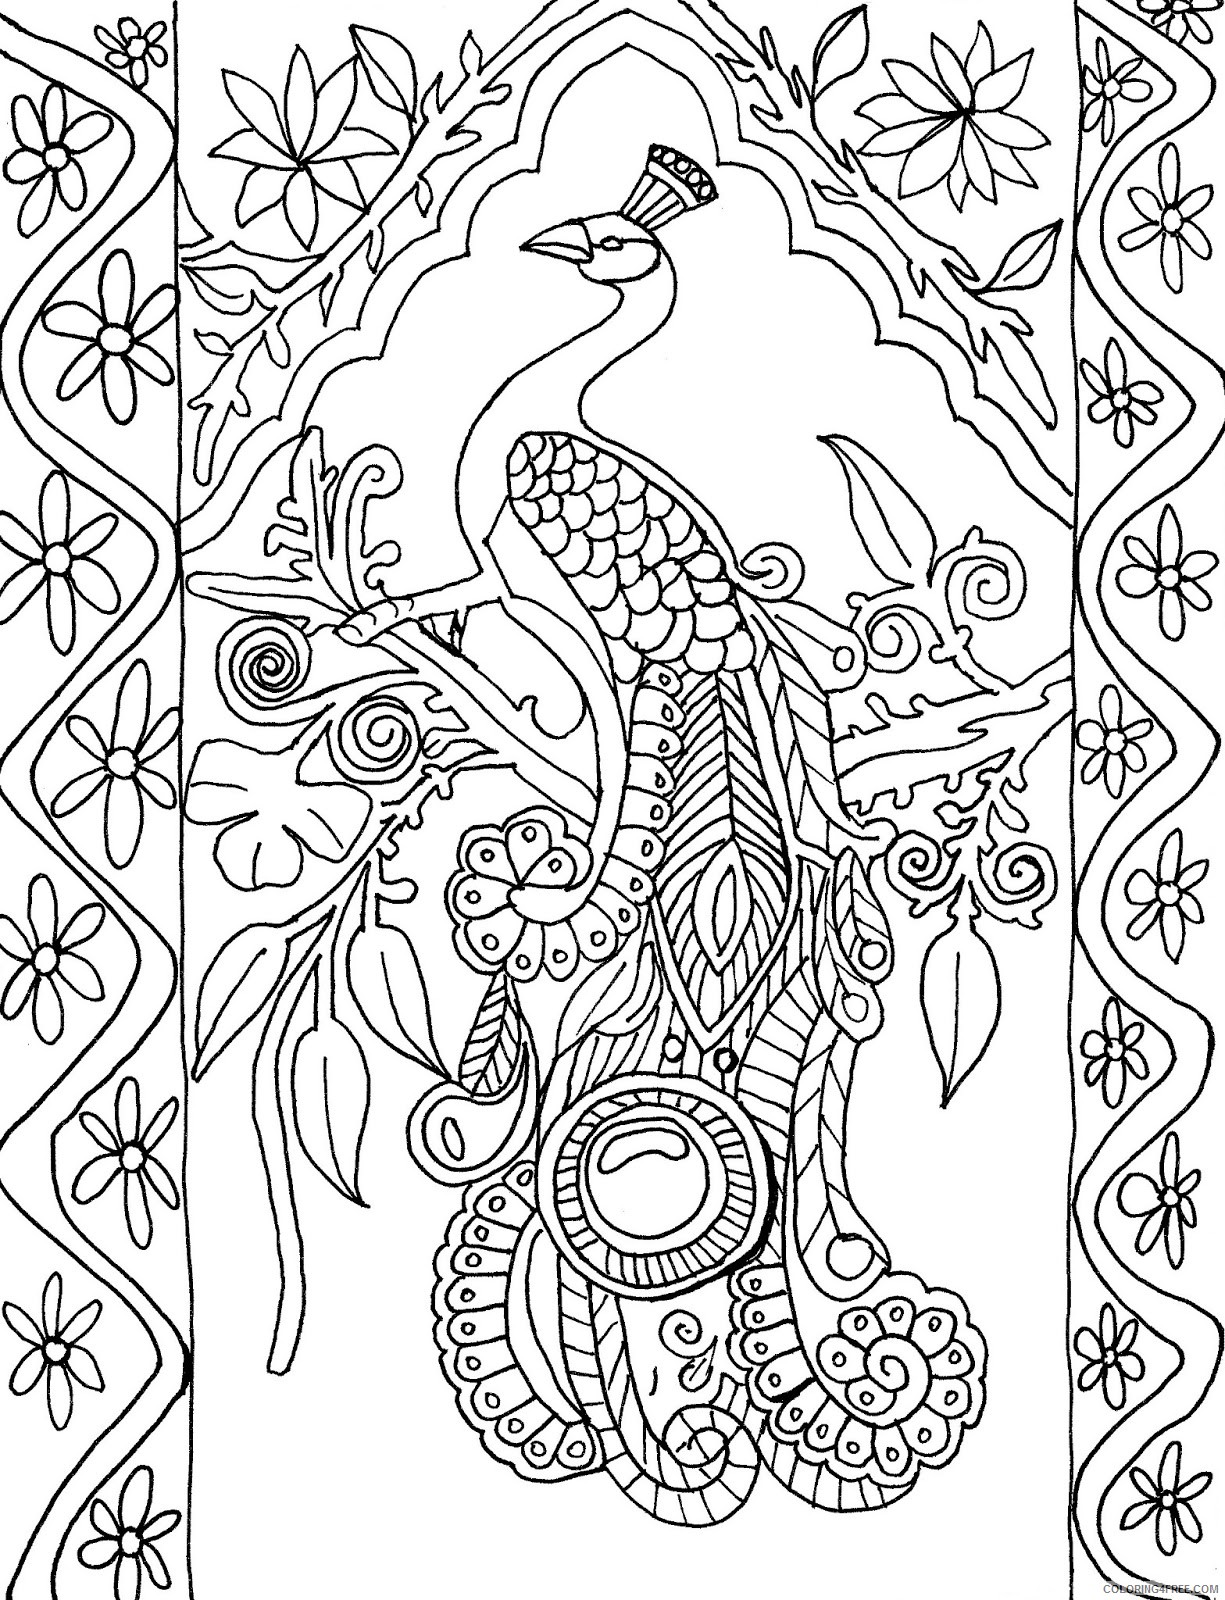 abstract peacock coloring pages for adults Coloring4free